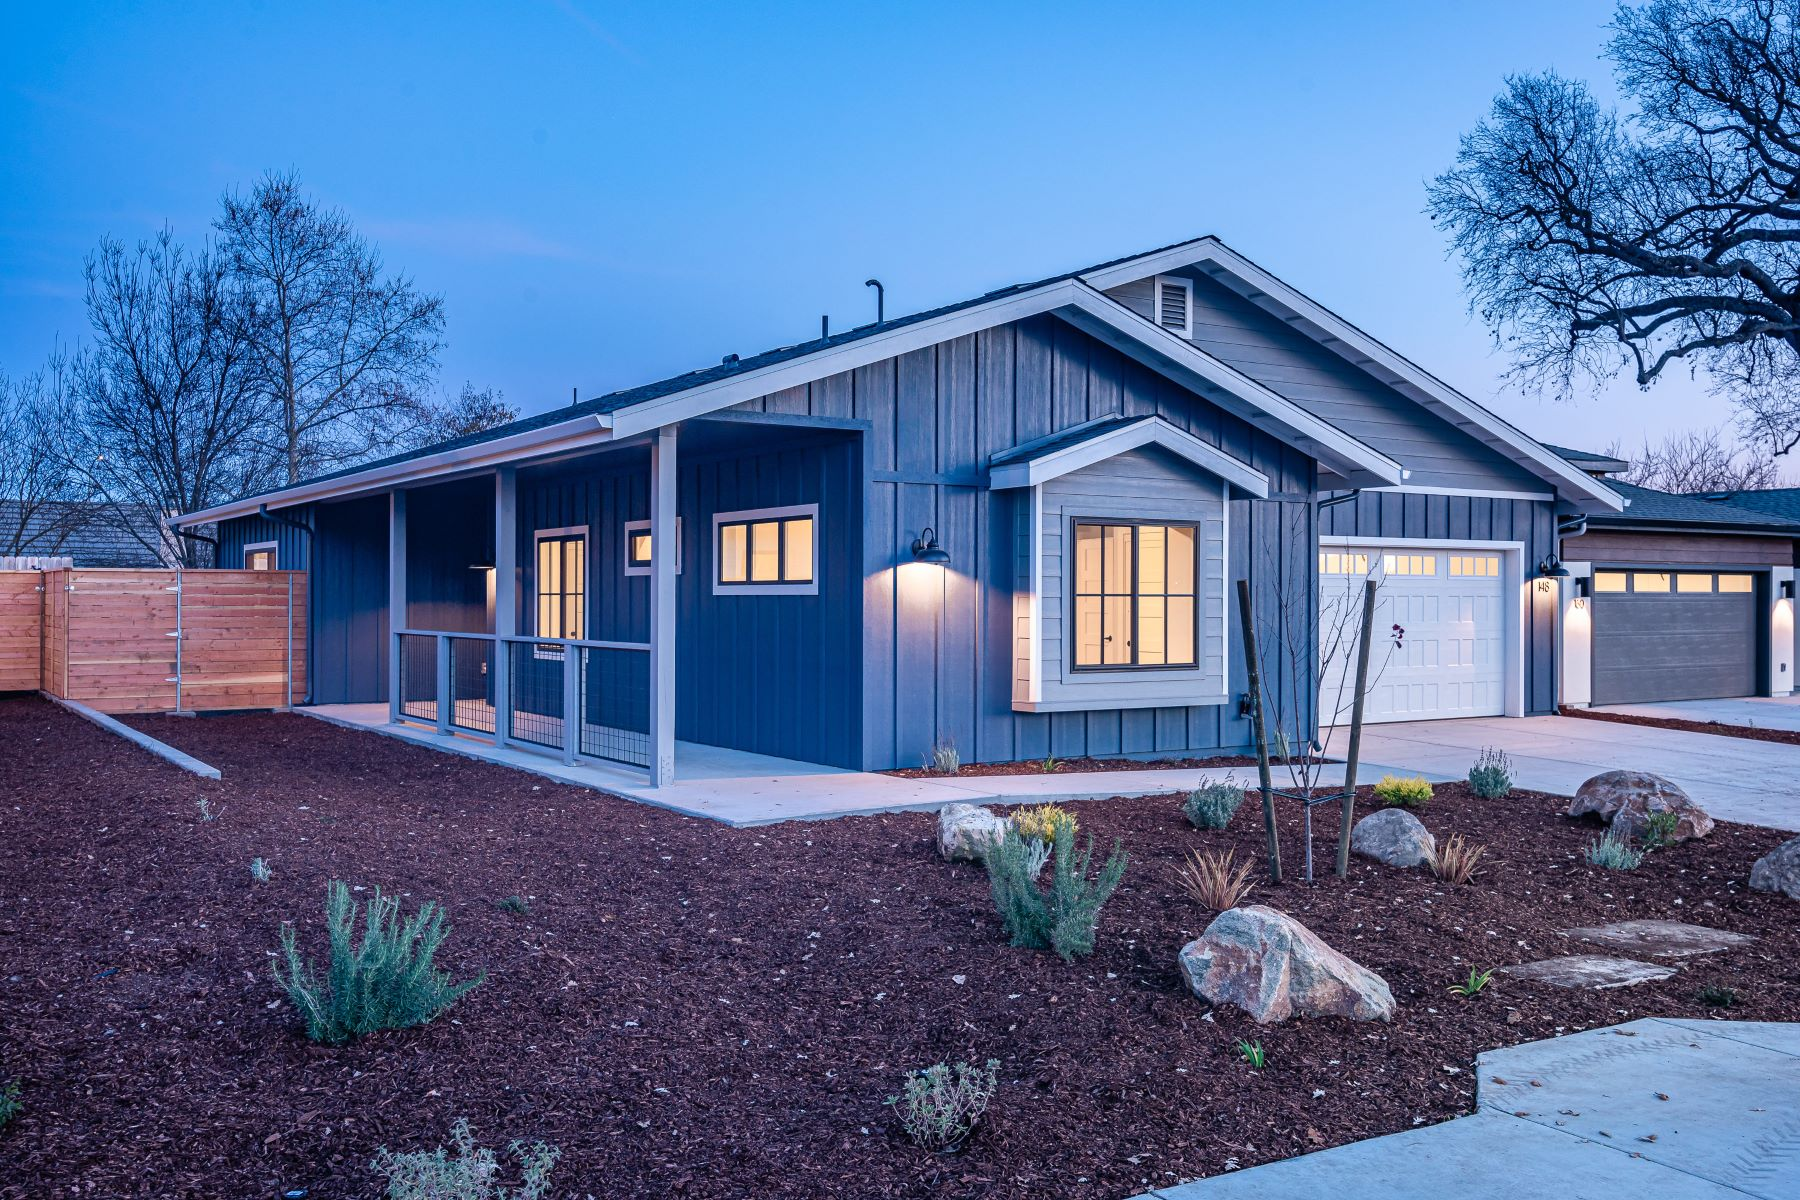 Single Family Homes for Sale at Built for the Comforts of Everyday Living 148 Rowan Way Templeton, California 93465 United States